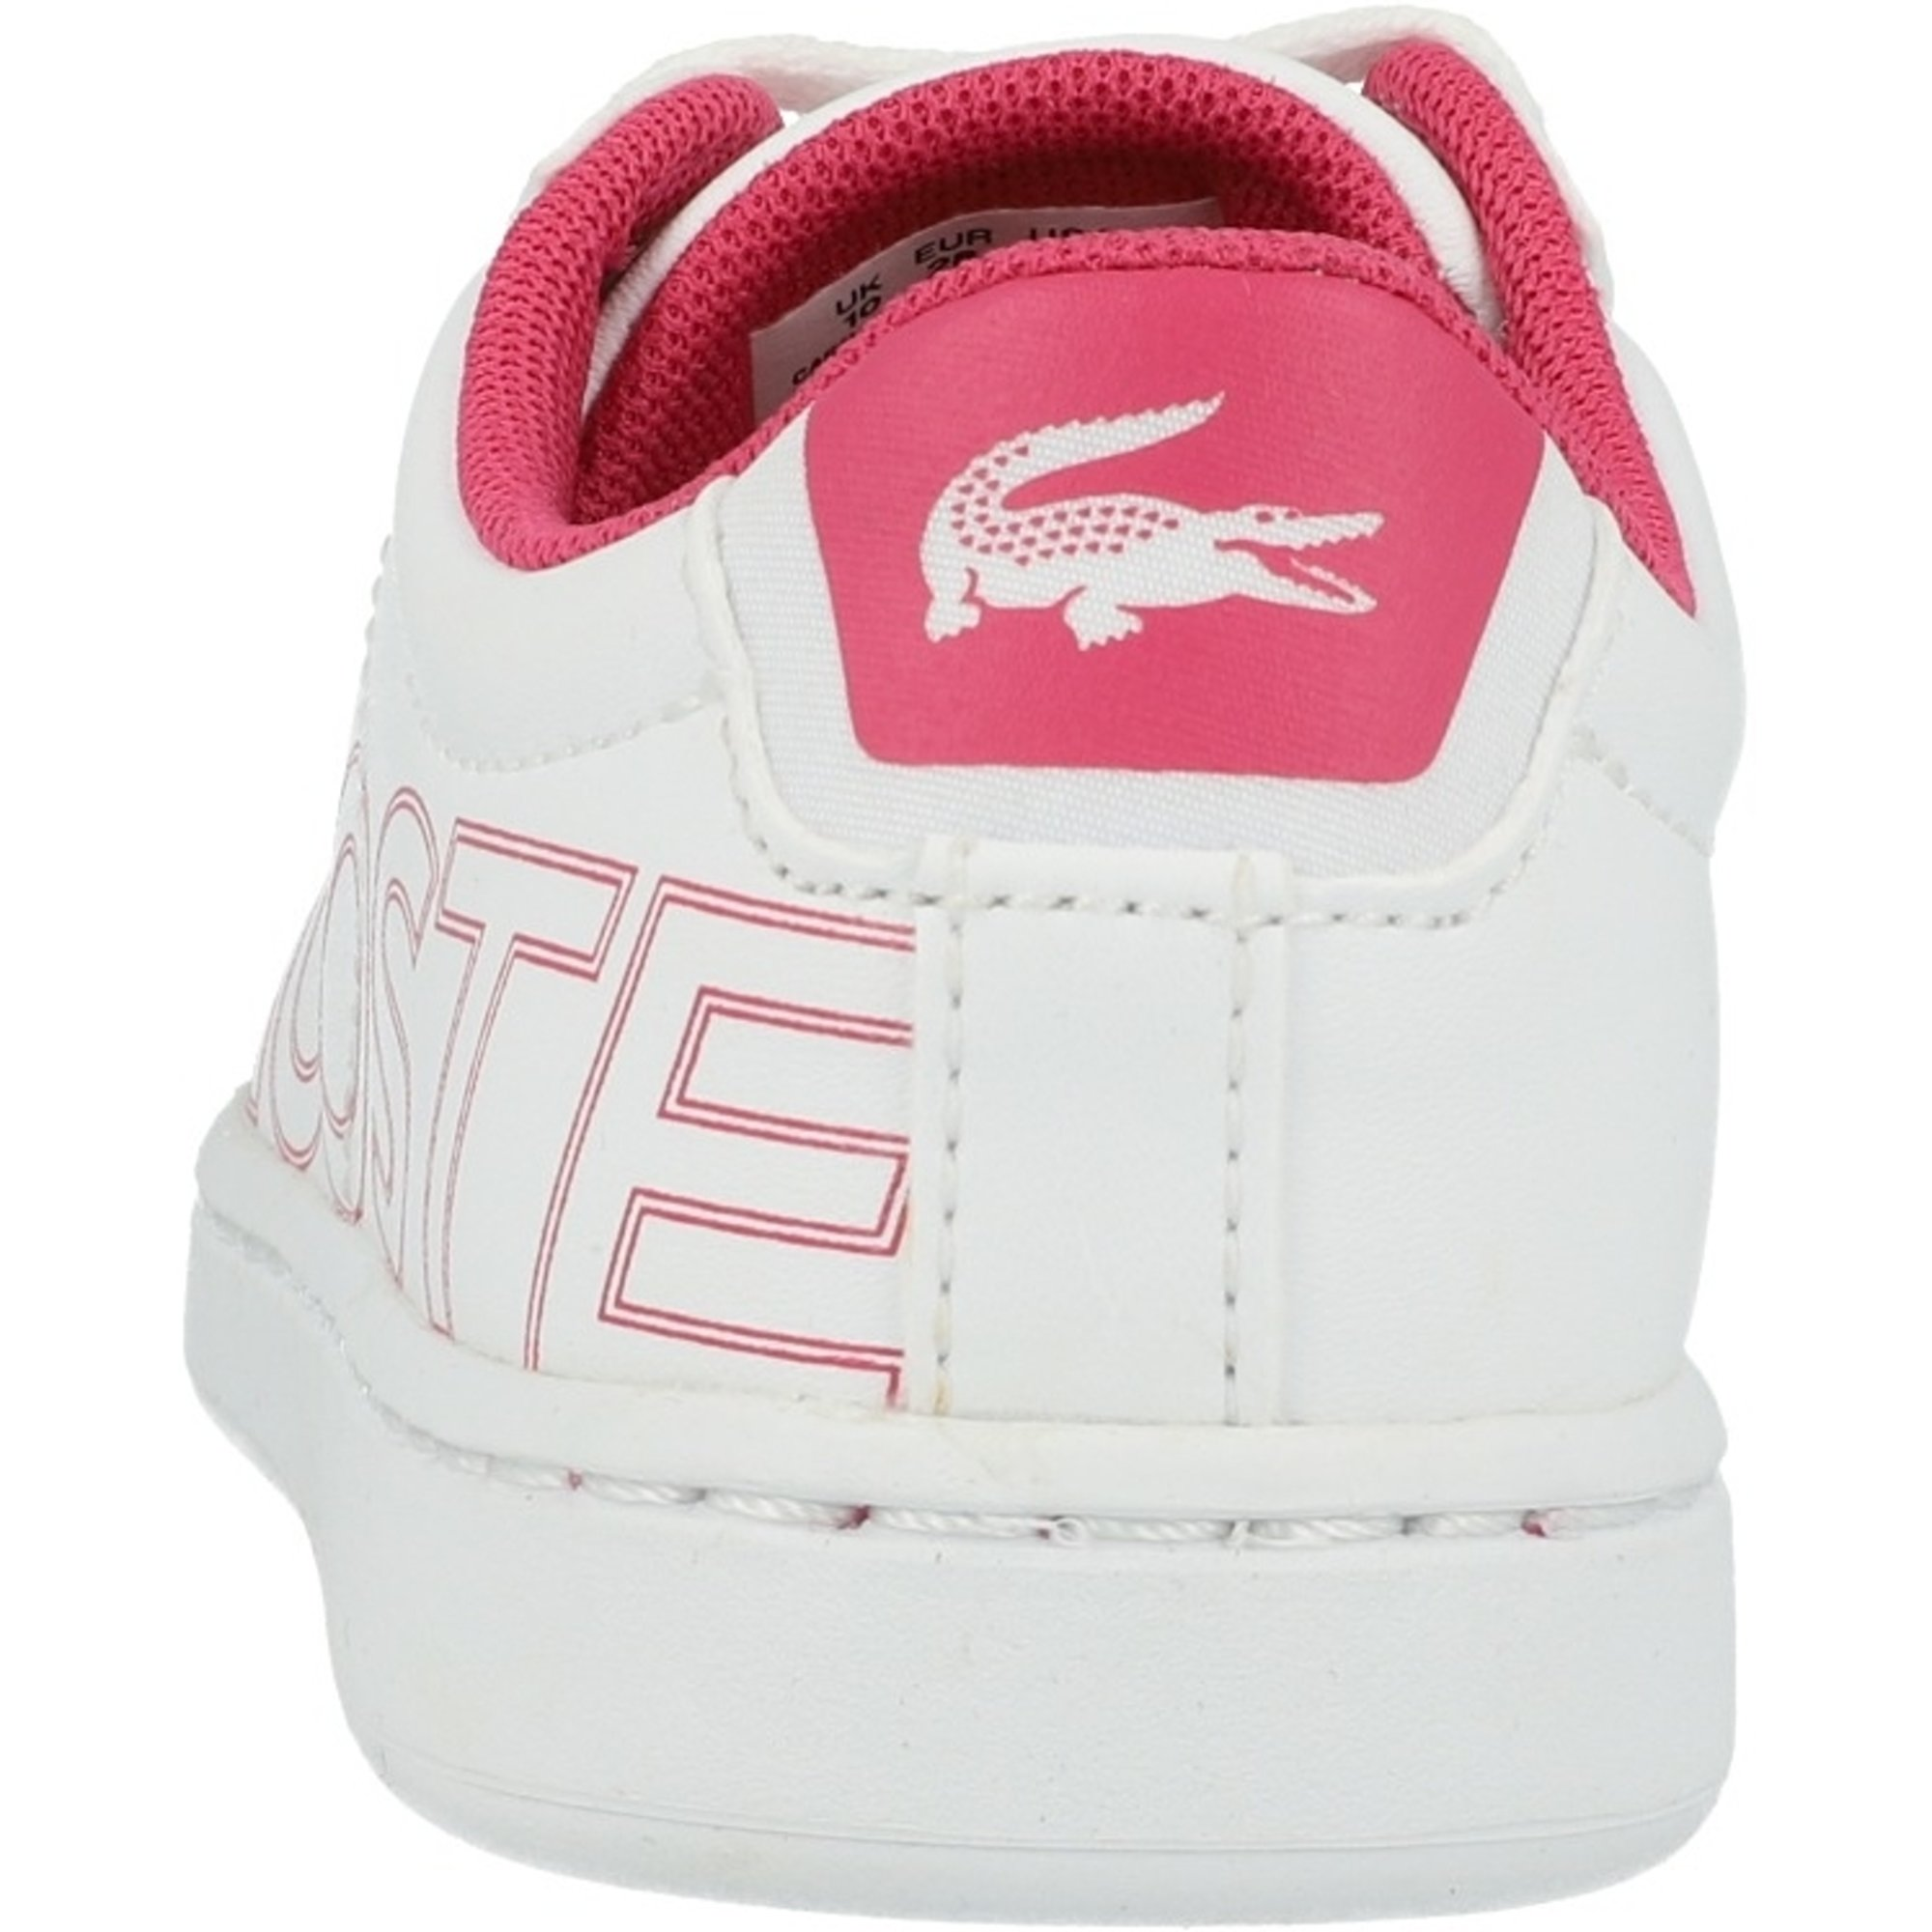 Lacoste Carnaby Evo 219 1 White/Dark Pink Synthetic